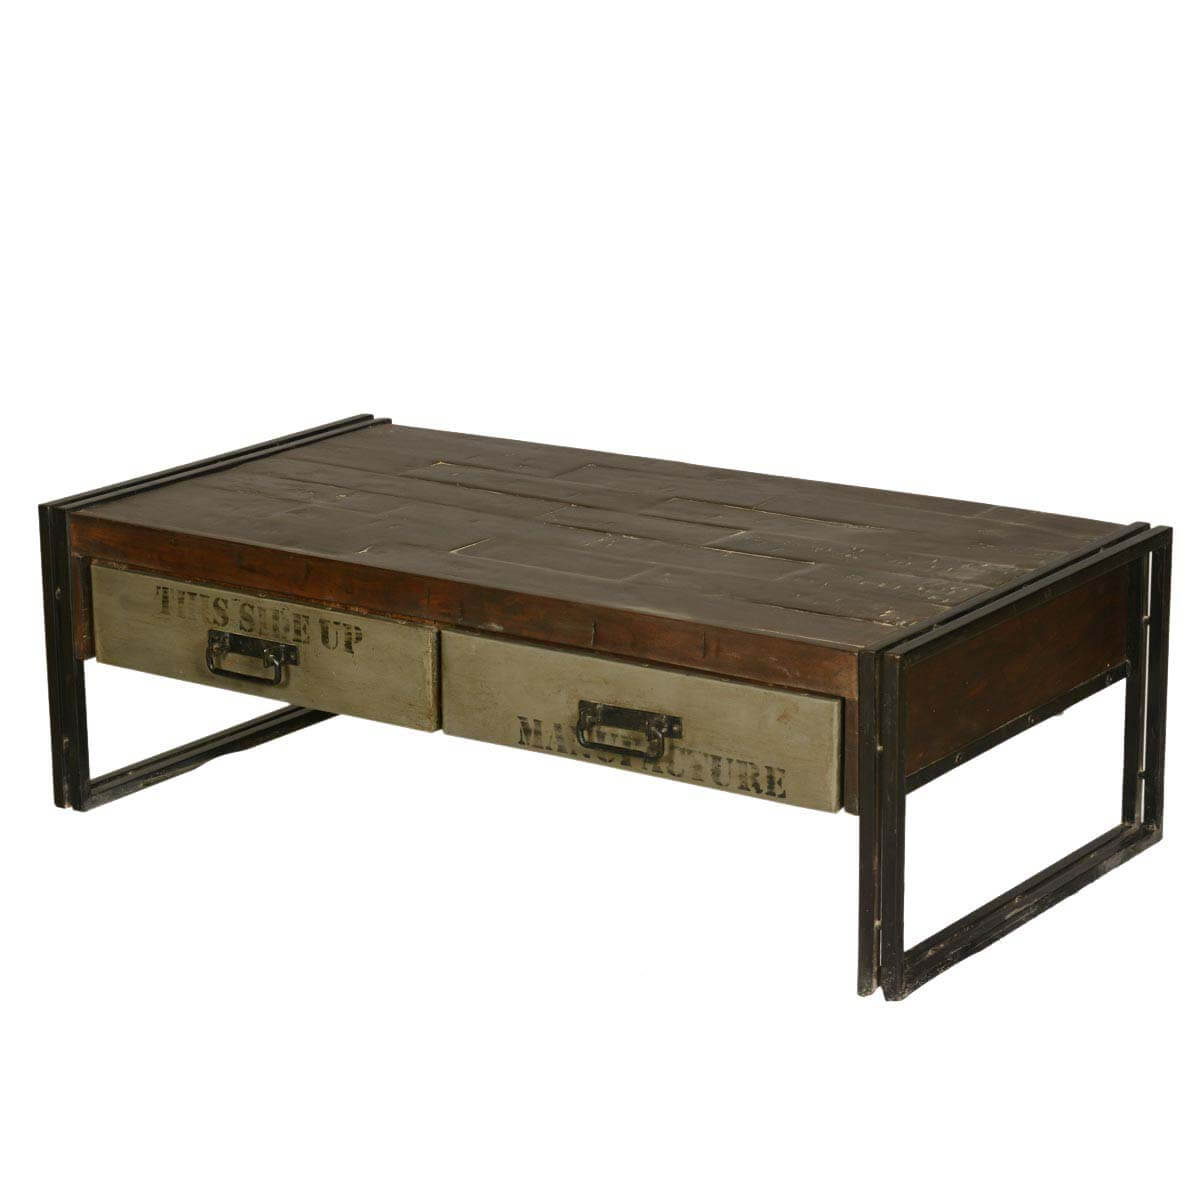 Philadelphia Modern Rustic Reclaimed Wood Metal Coffee Table: rustic wooden coffee tables